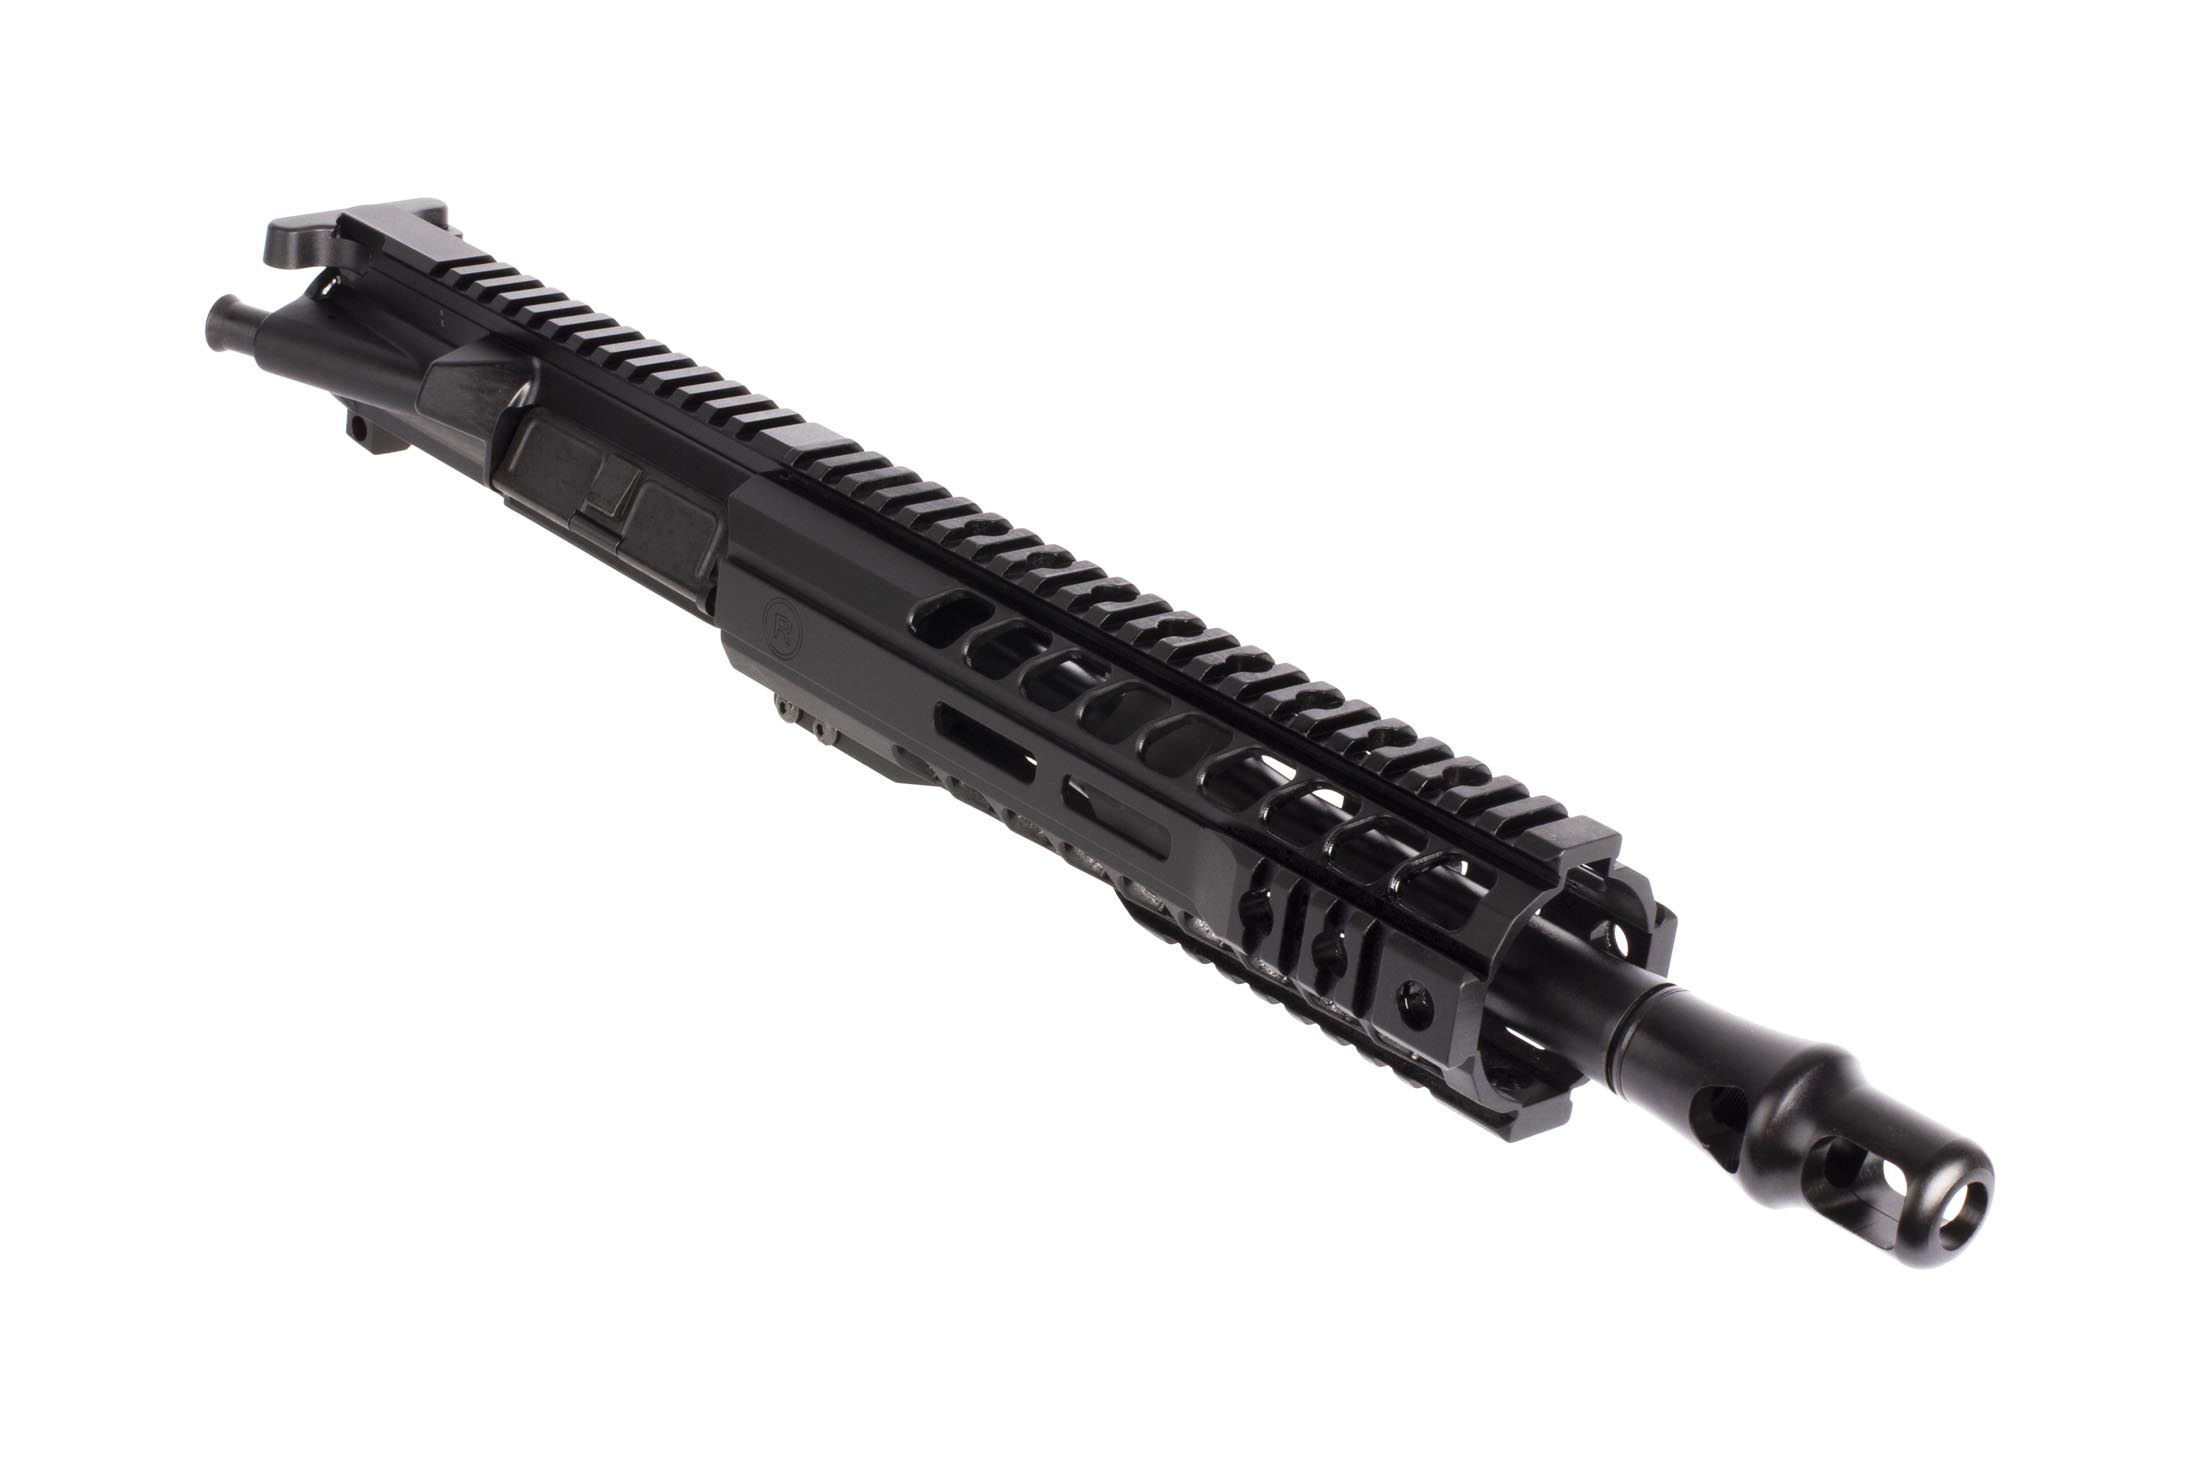 Complete AR Upper